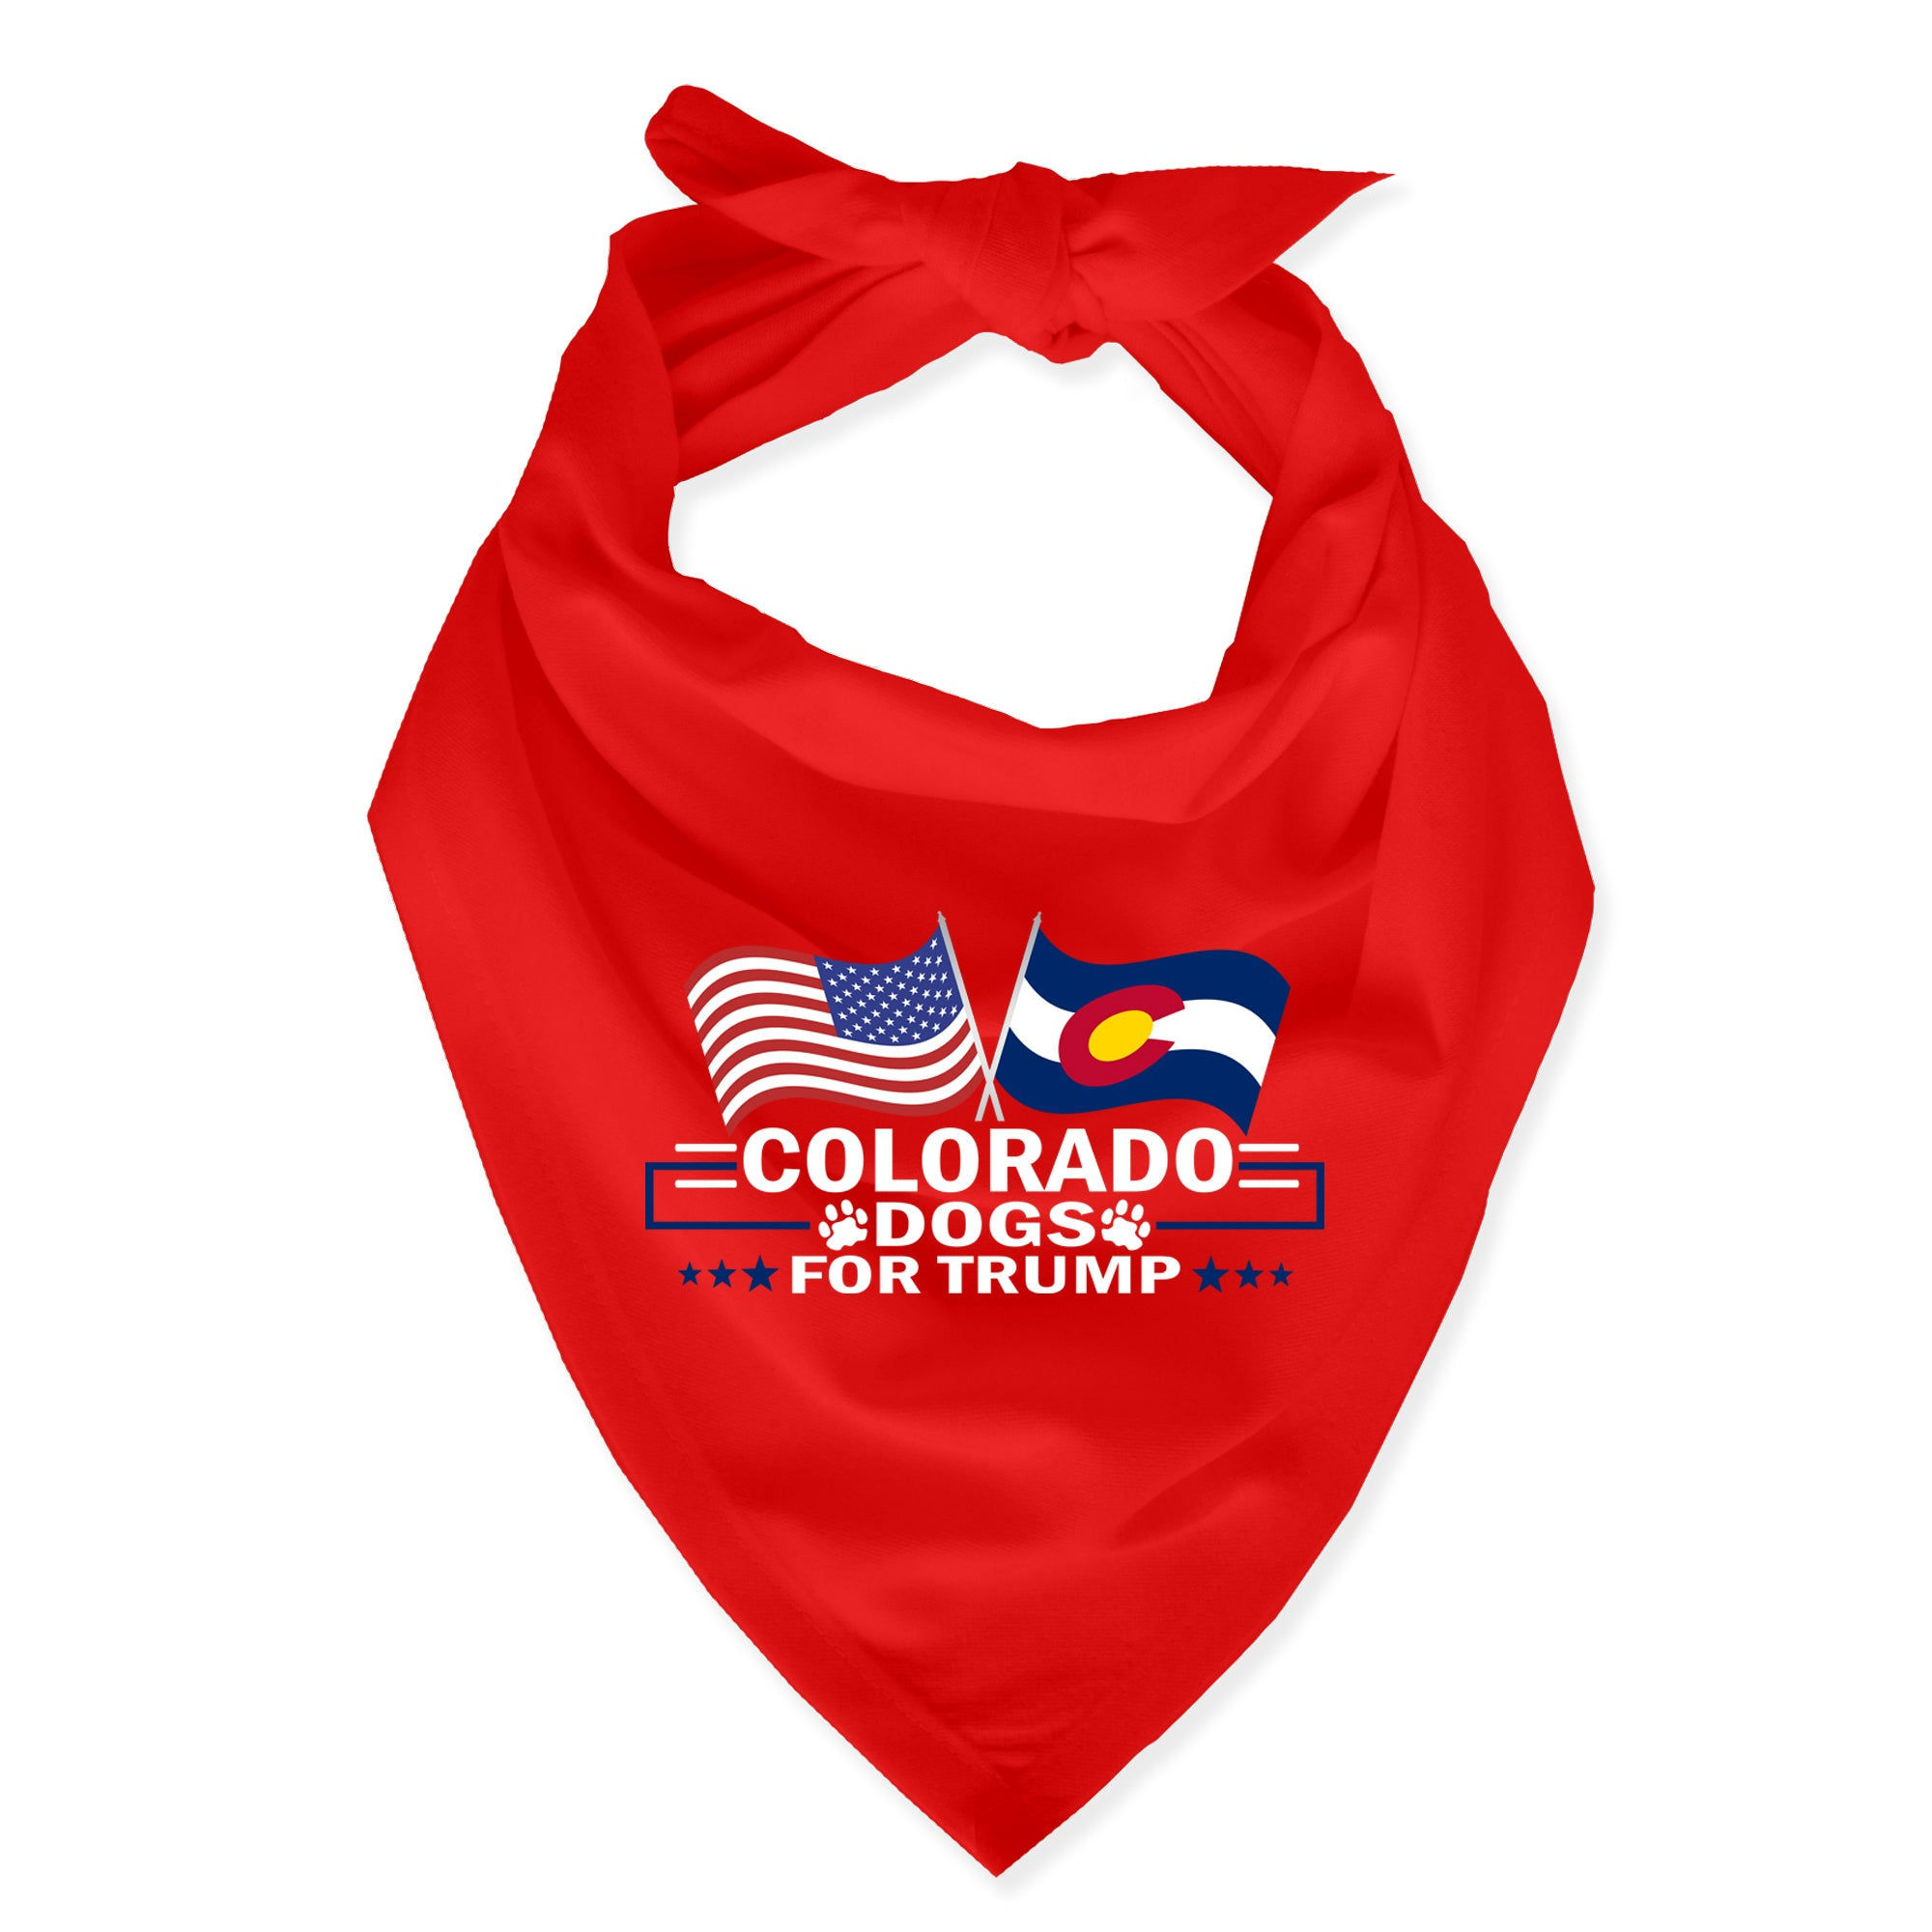 Colorado For Trump Dog Bandana Limited Edition